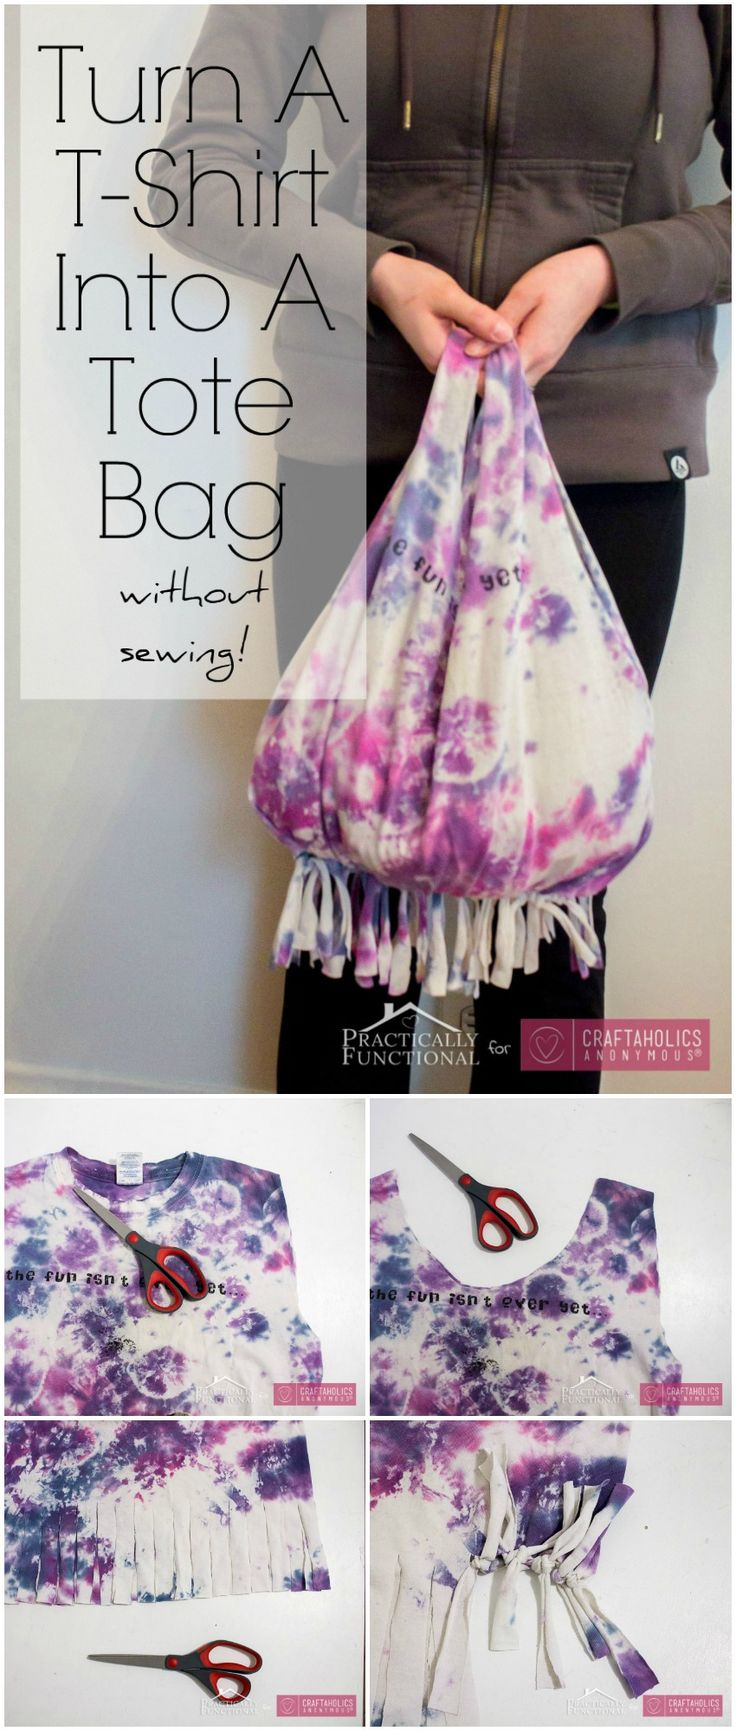 How to turn a T-Shirt Into Tote Bag || Great Teen craft idea!